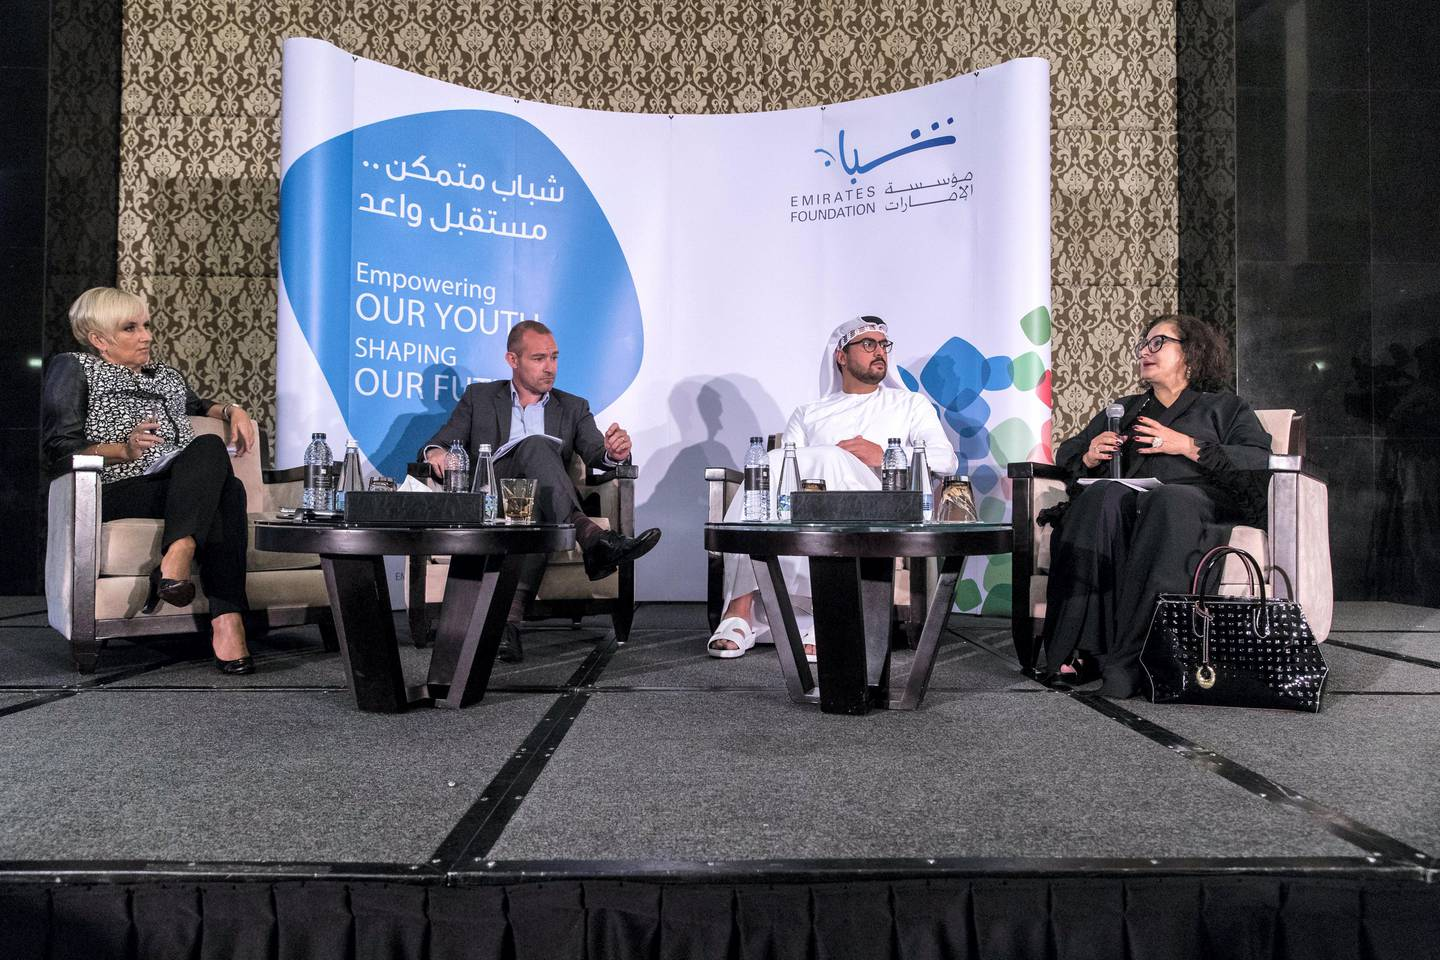 Dubai, United Arab Emirates, September 19, 2017:    Nariman Abdulla Kamber Alawadhi, chief manager at the Central Bank of the UAE, right, speaks as Clare Woodcraft-Scott, CEO of the Emirates Foundation, left to right, Andrew Woolnough VP, Corporate Communications, CEMEA Visa Middle East and Tariq Mana Saeed Al Otaiba, Sr. associate office of Strategic Affairs Crown Prince Court, Abu Dhabi listen on during a panel discussion about boosting financial literacy confidence among youth hosted by the Emirates Foundation at The Address Hotel in the Dubai Marina area of Dubai on September 19, 2017. Christopher Pike / The National  Reporter: Alice Haine Section: News